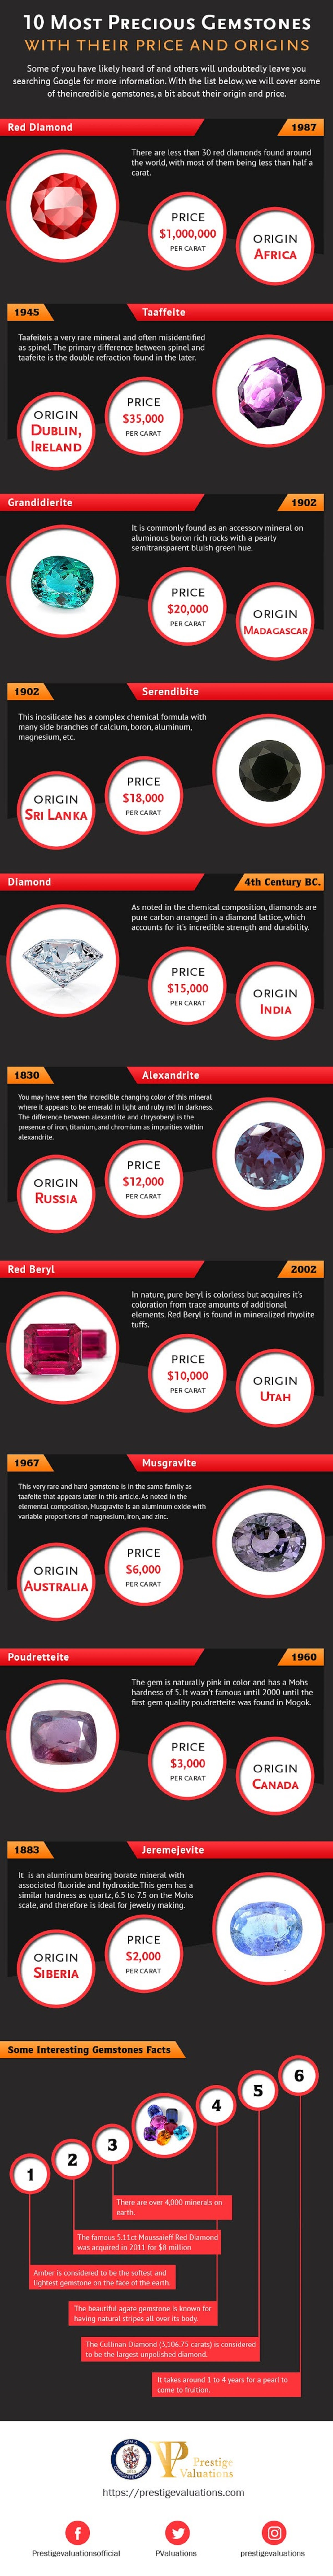 how-much-is-your-stuff-worth-top-10-precious-gemstones-infographic